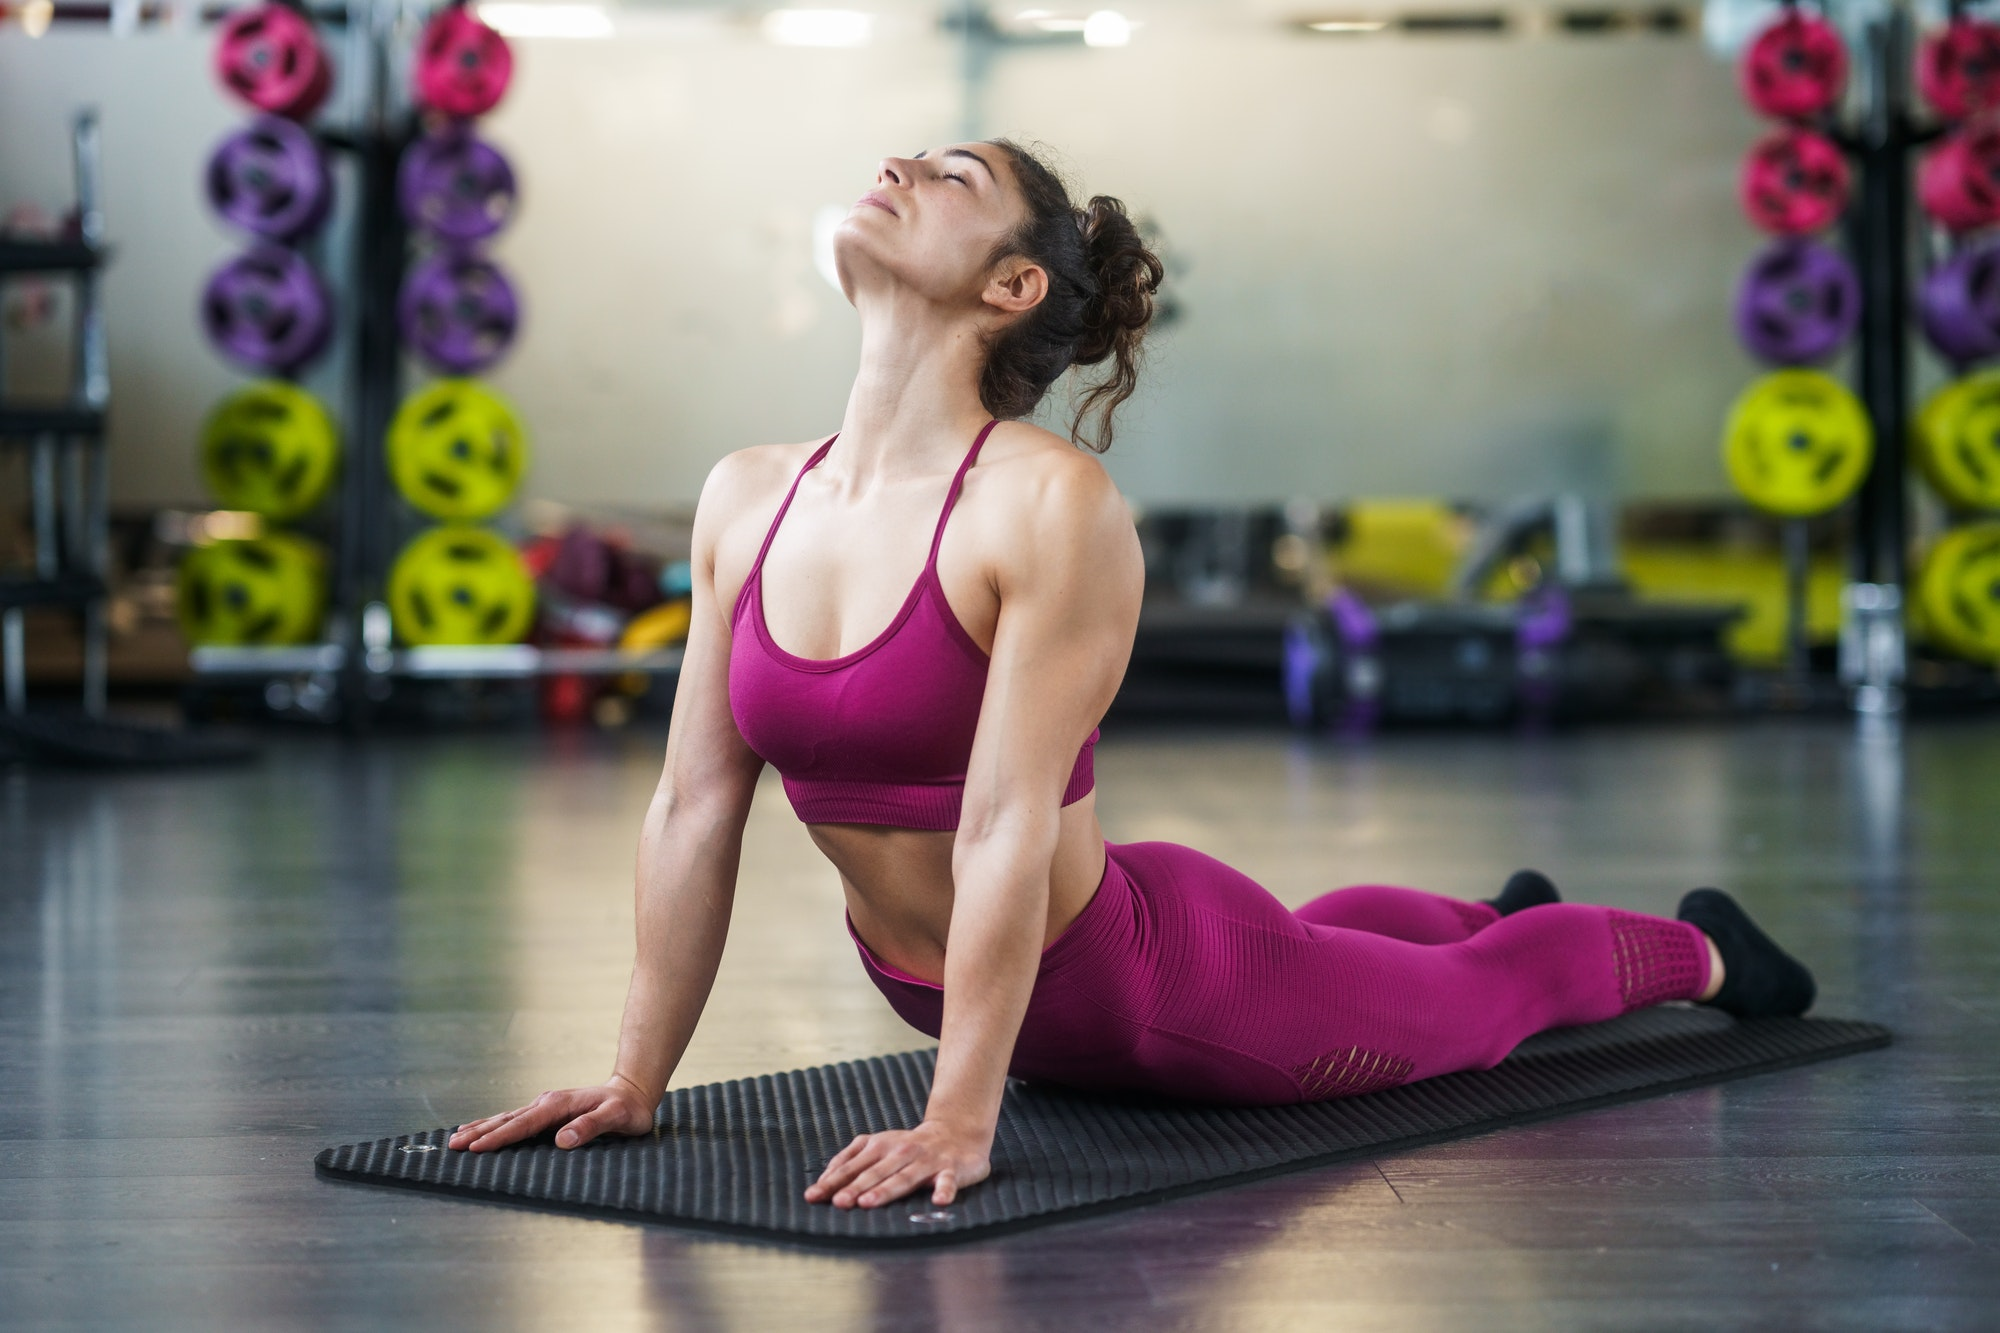 Young woman Doing Stretching Exercises on a yoga mat